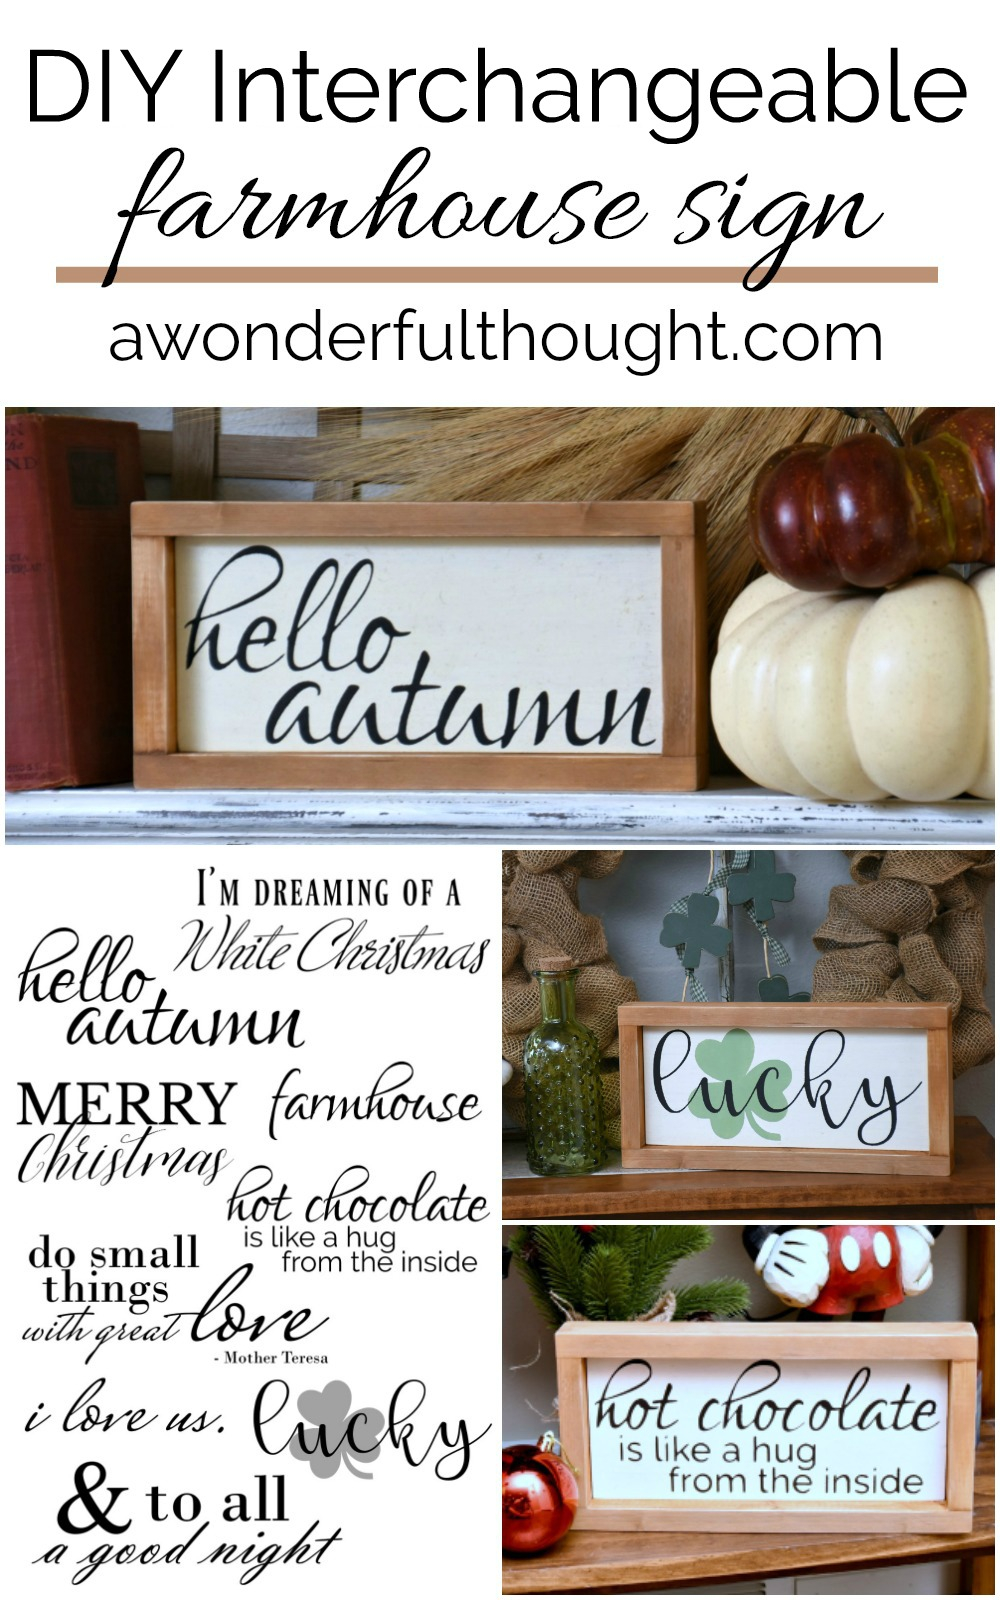 DIY Interchangeable Farmhouse Sign - A Wonderful Thought